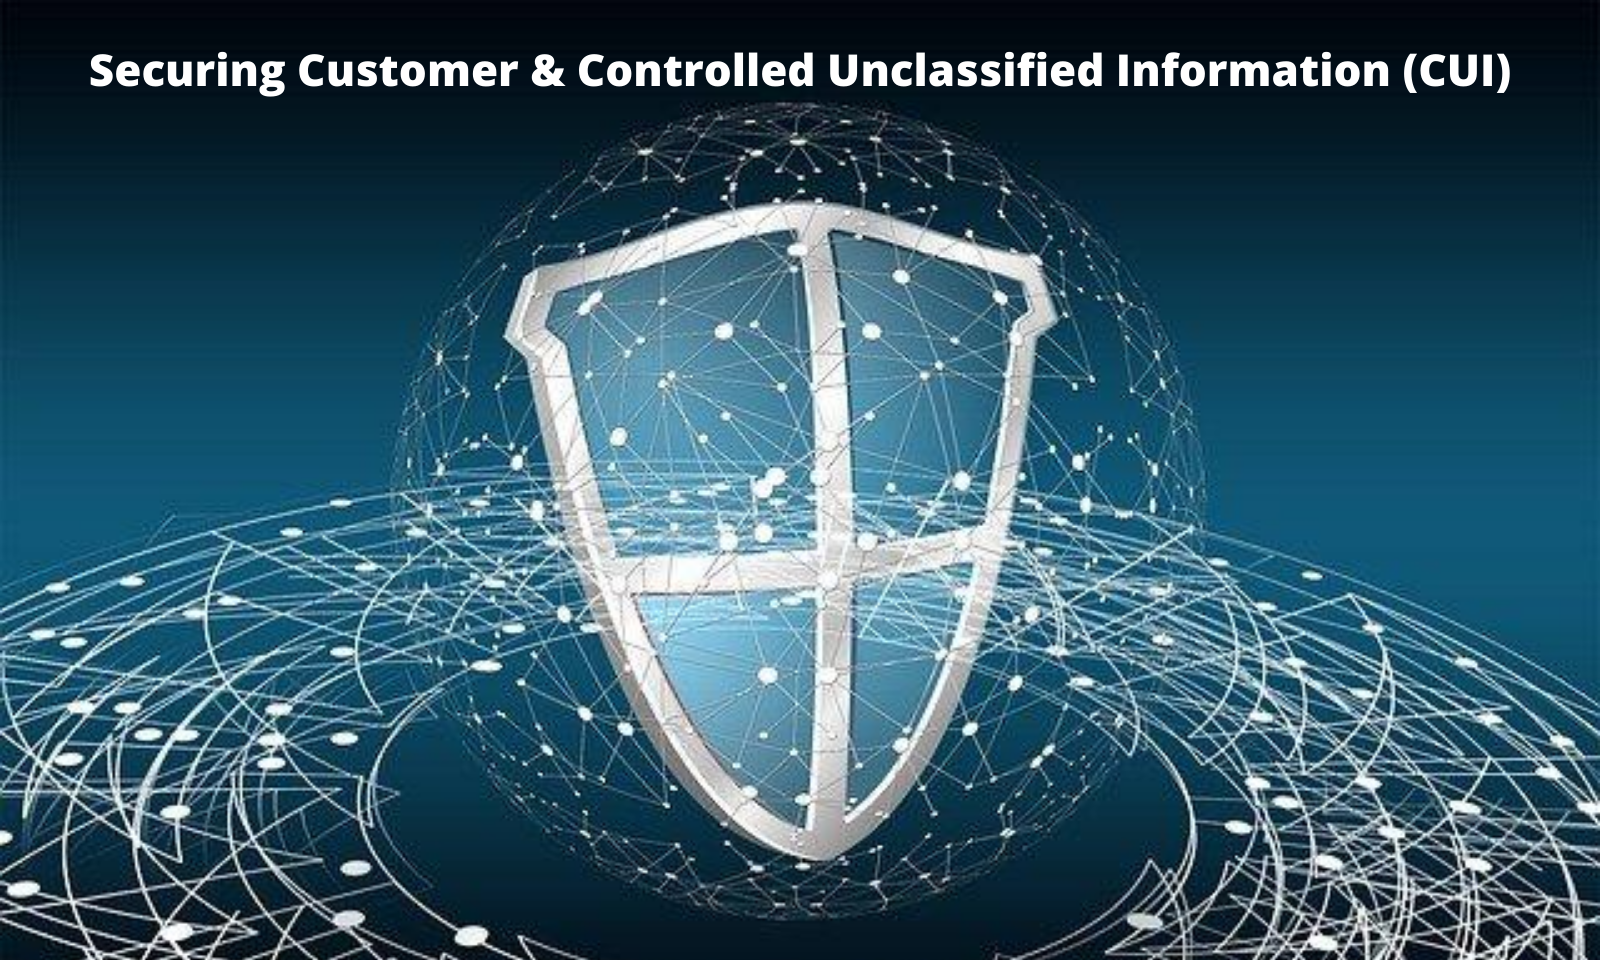 Securing Customer & Controlled Unclassified Information (CUI)